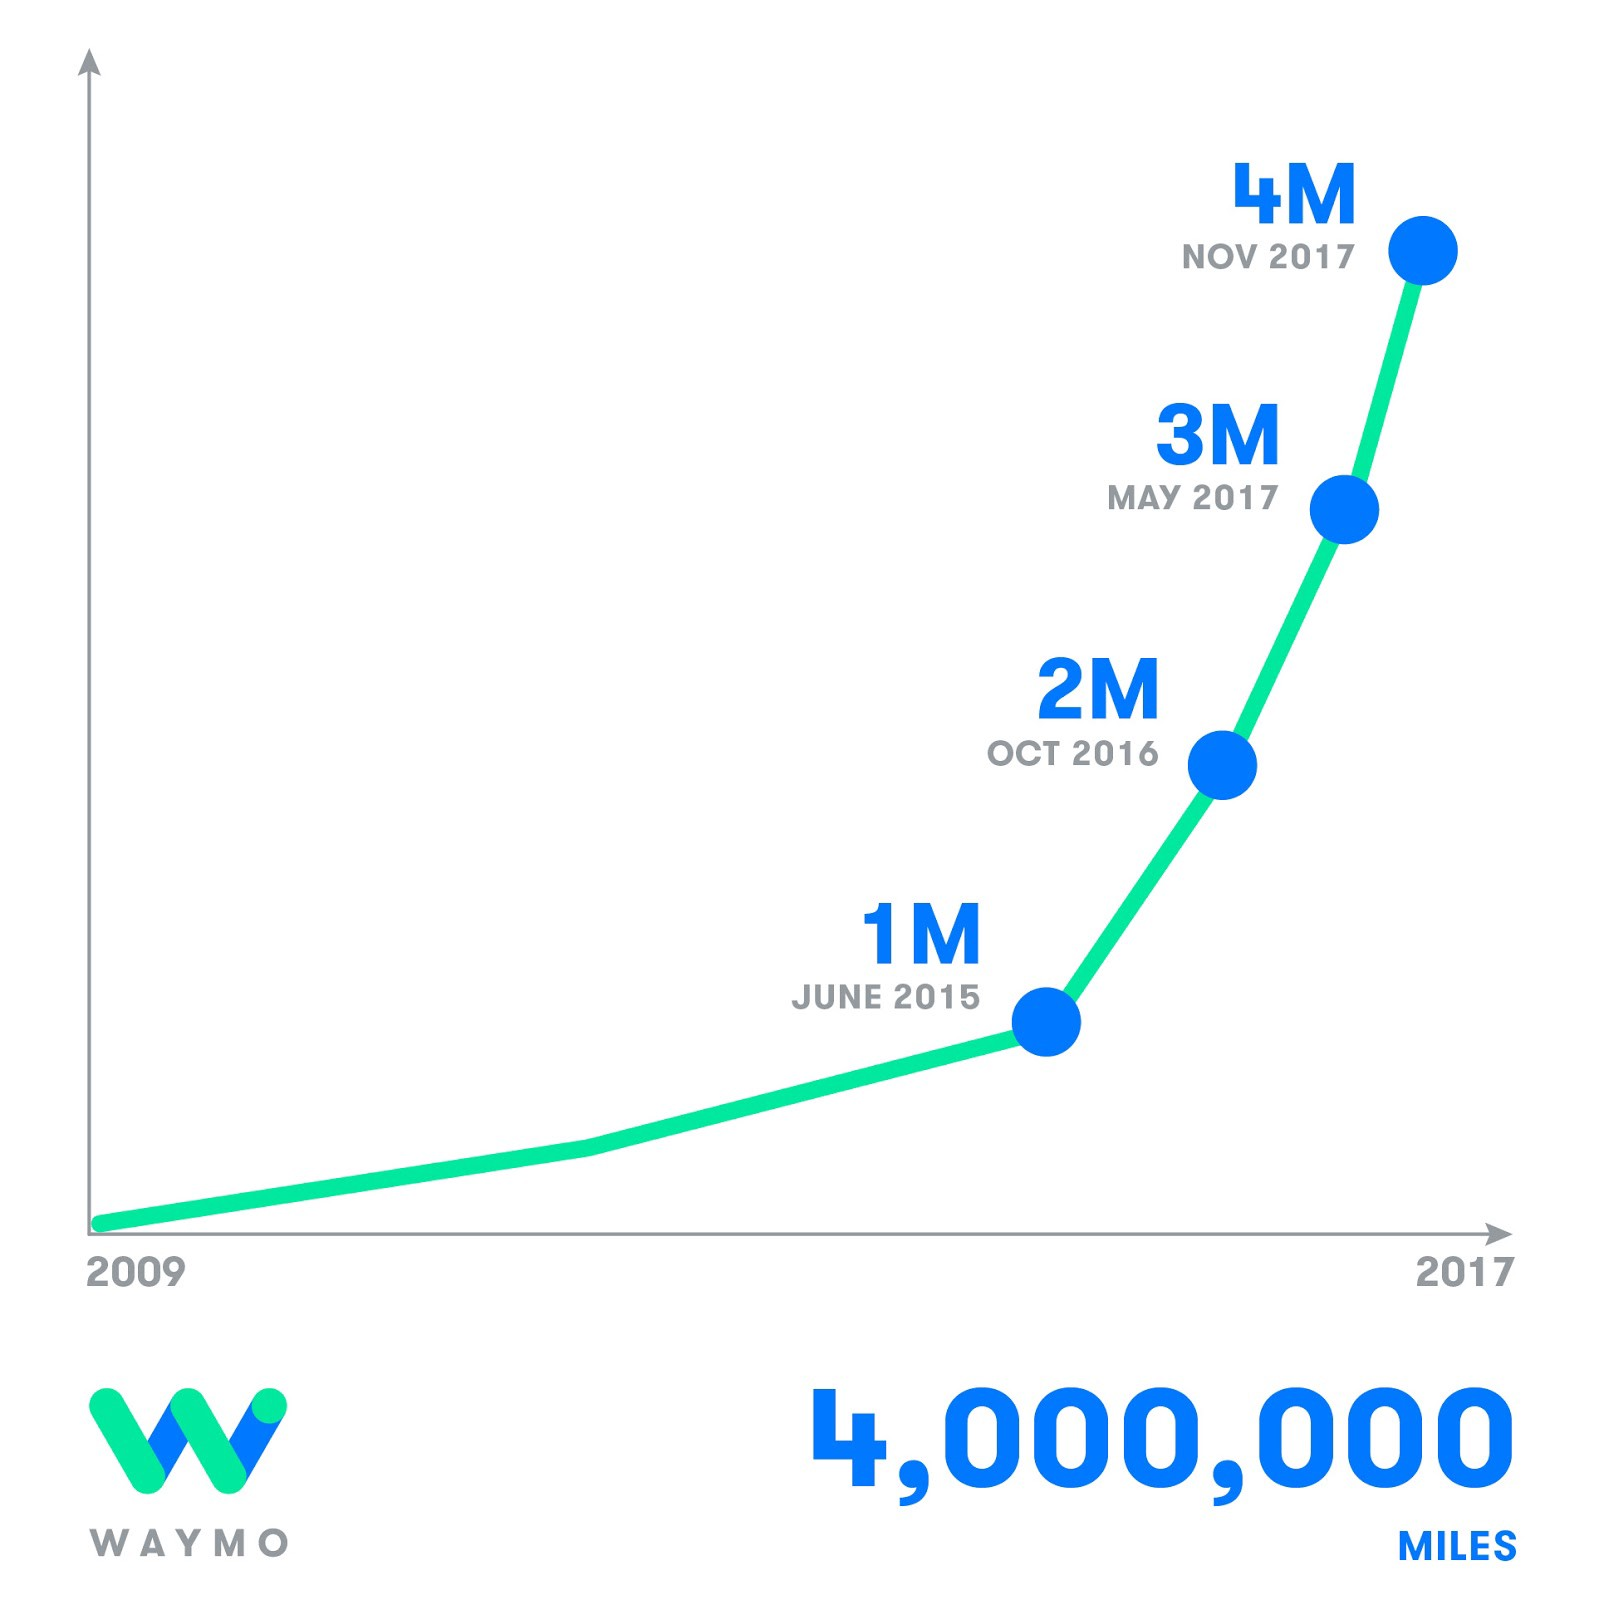 Waymo's self-driving cars hit 4 million miles